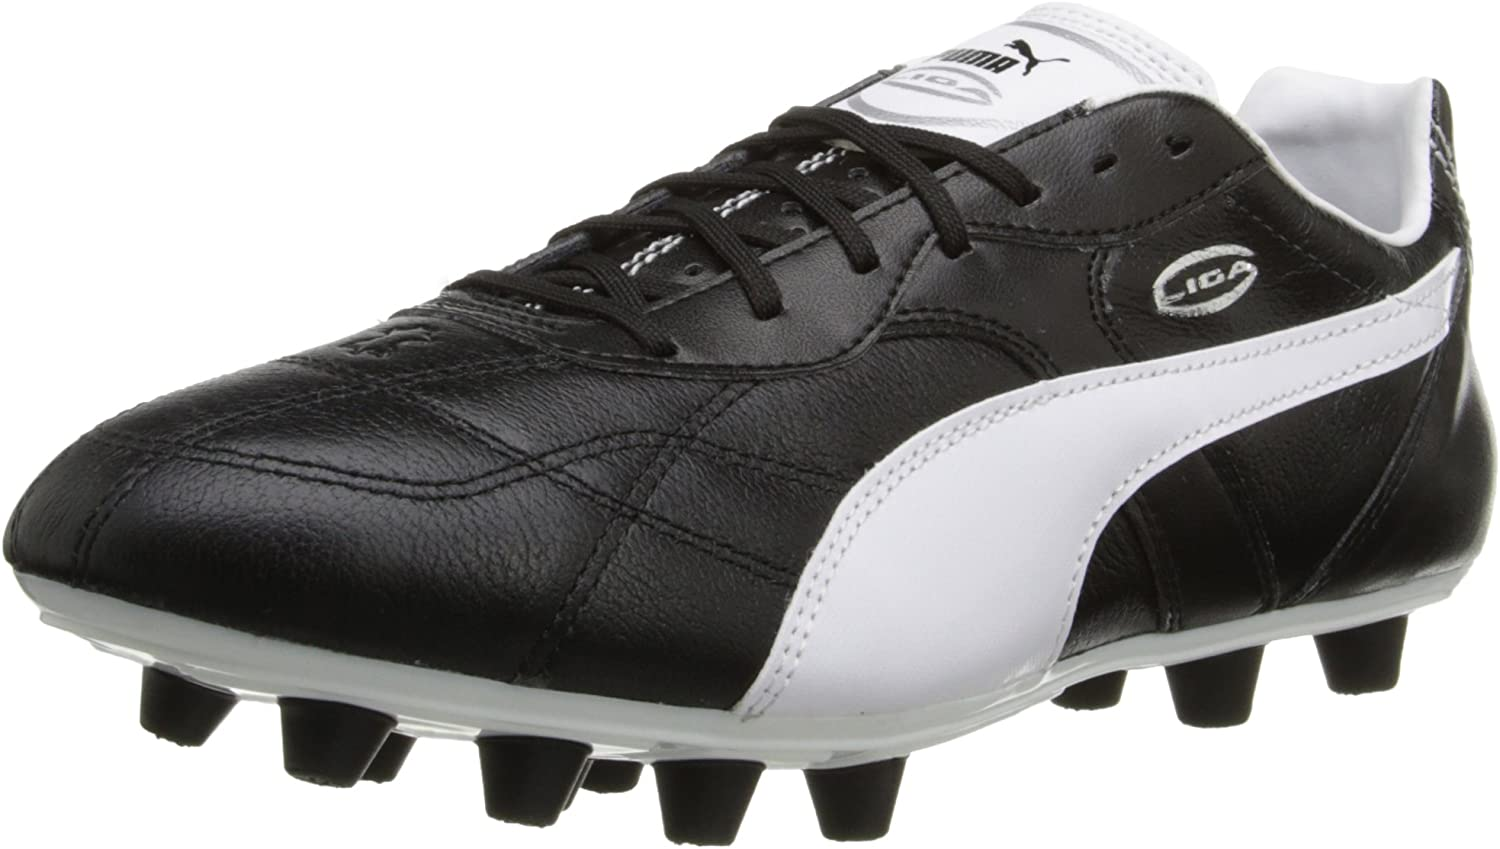 PUMA Men's Liga Classico Firm Ground Soccer Cleat